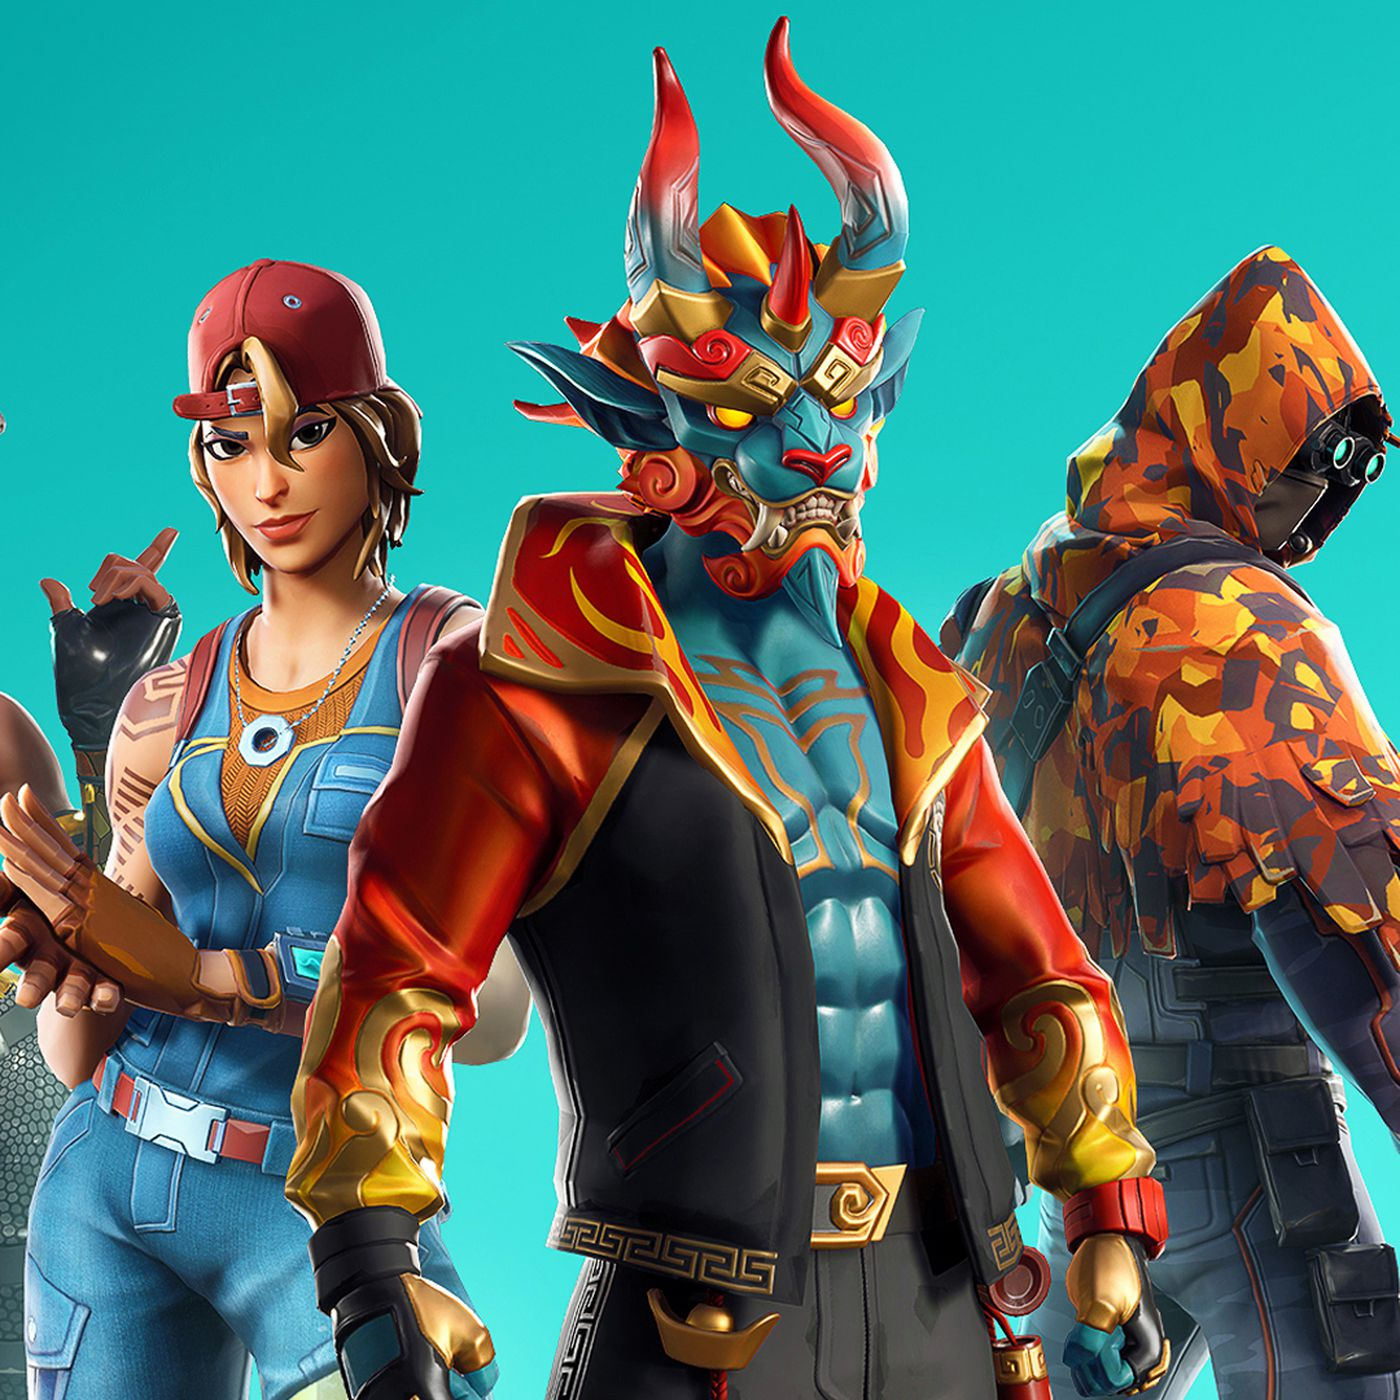 Fortnite Is Free But Kids Get Bullied Into Spending Money For